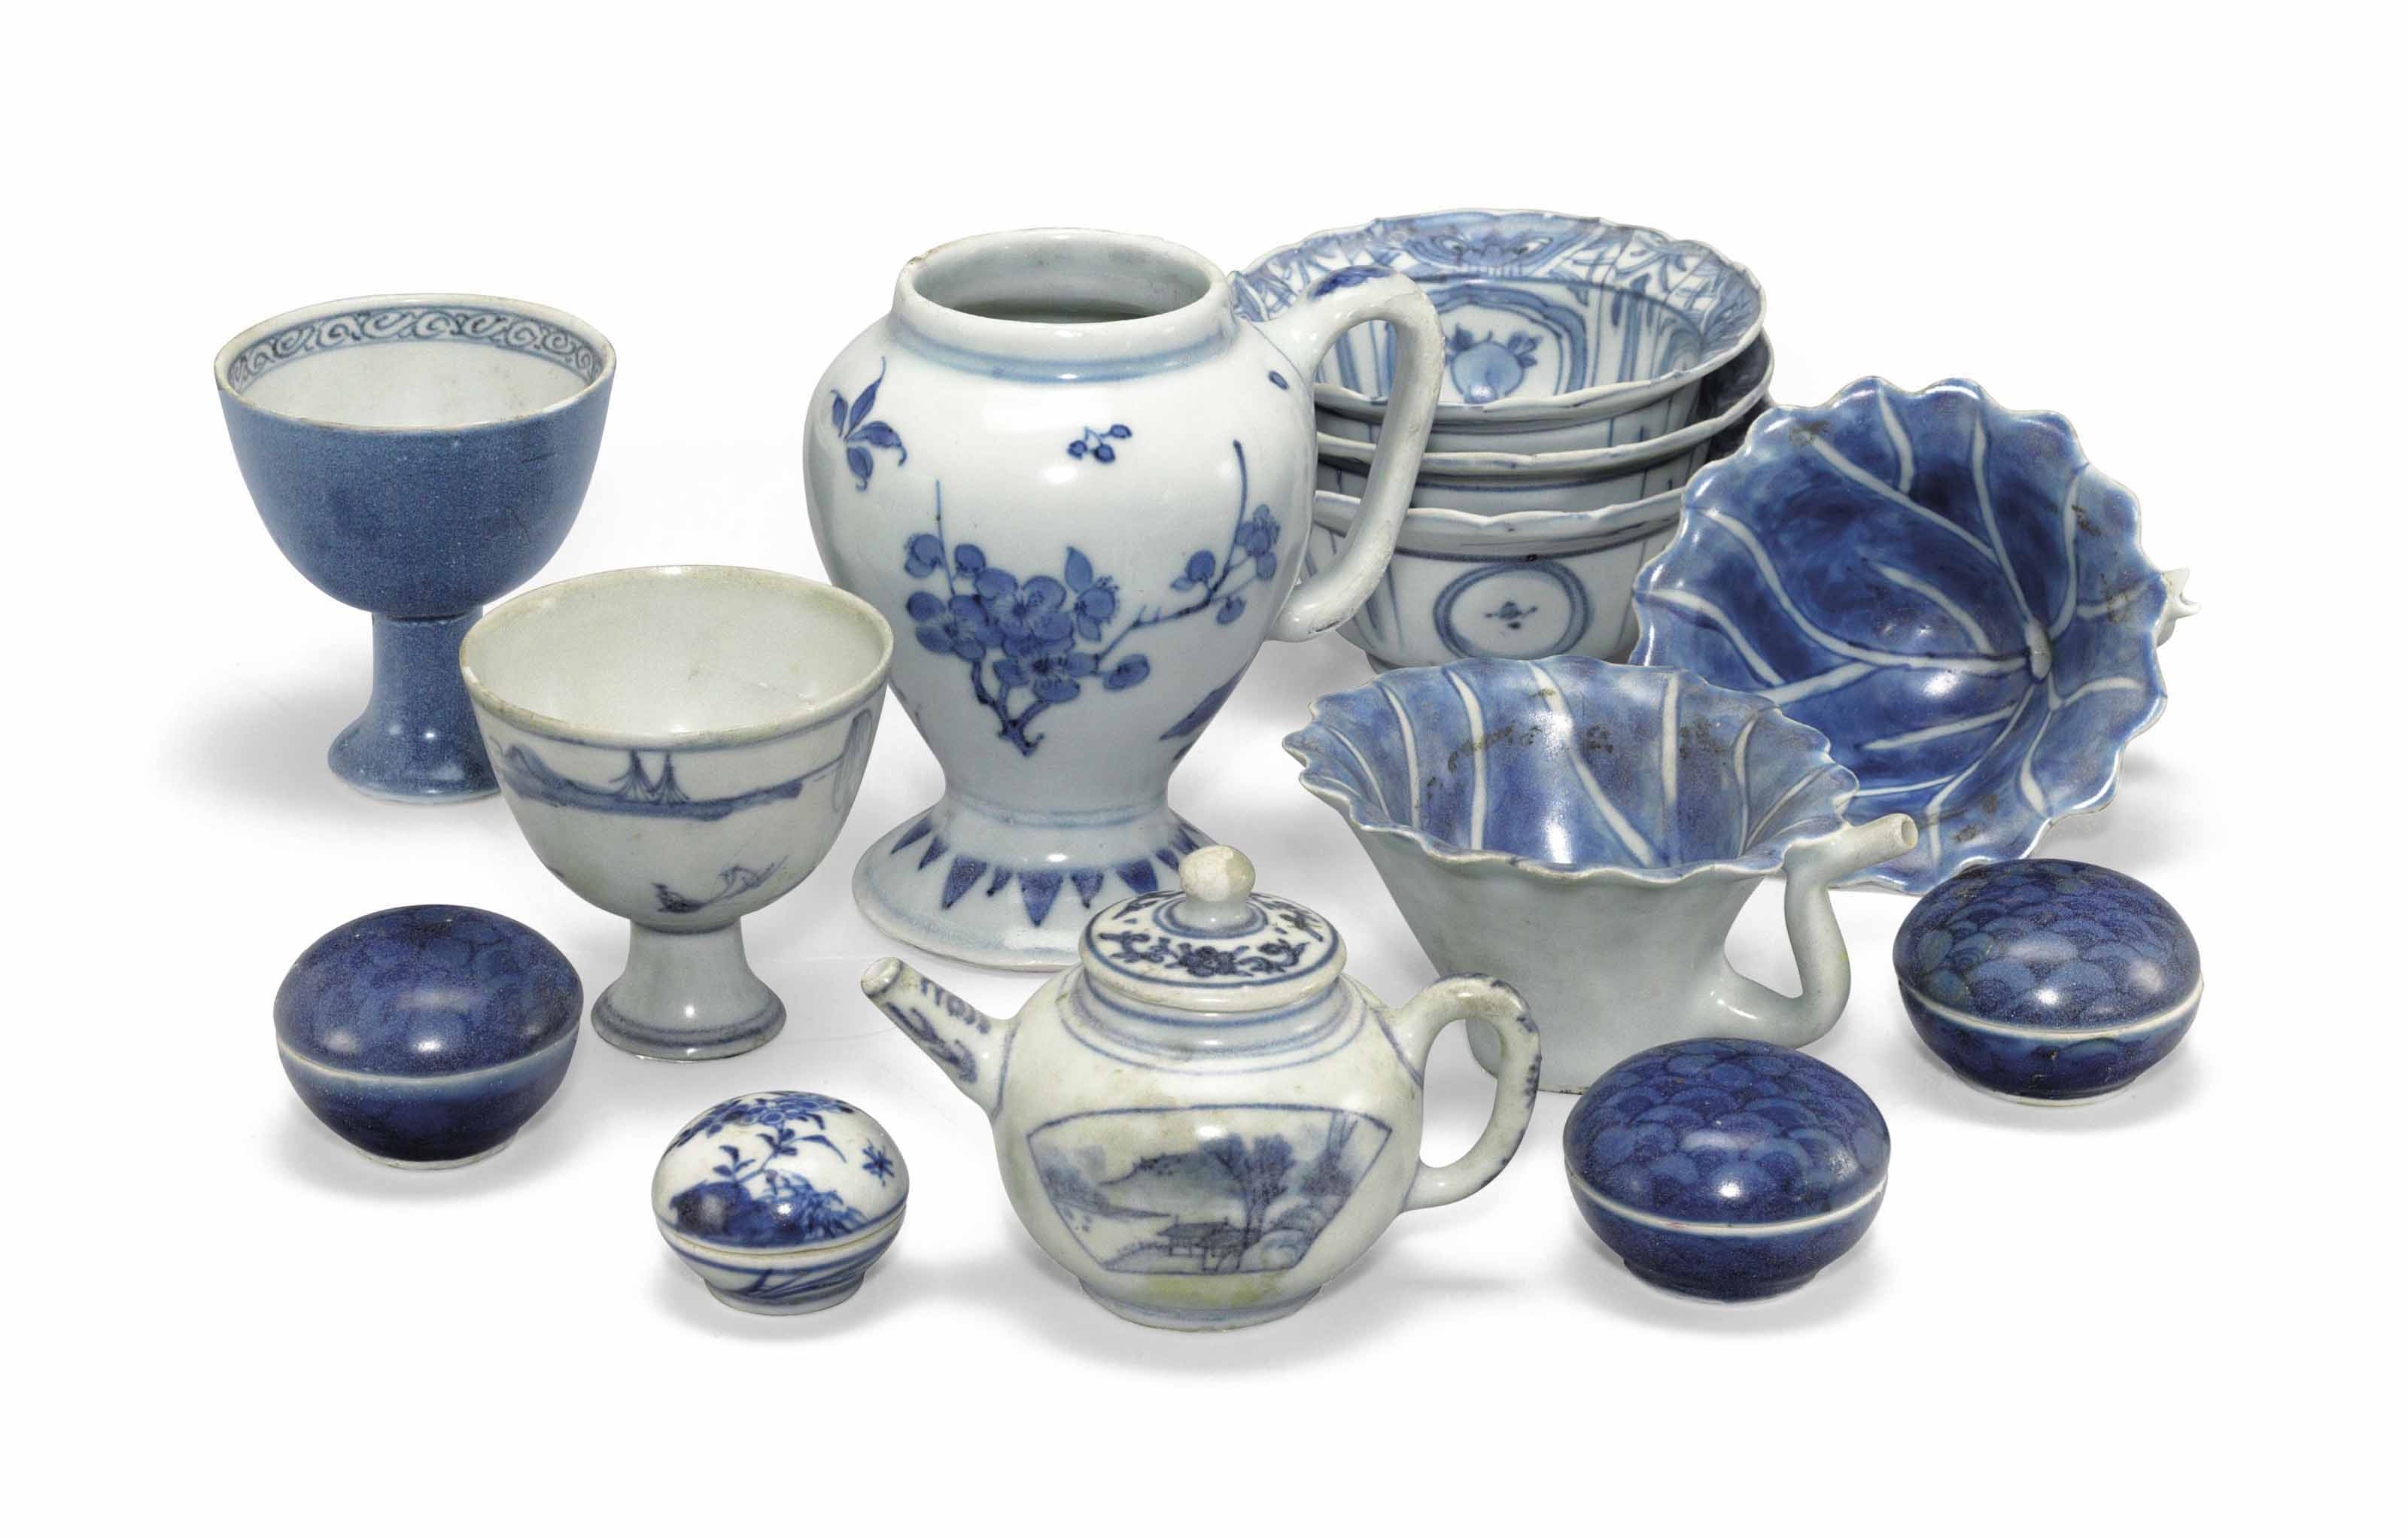 A GROUP OF SMALL 'HATCHER CARGO' BLUE AND WHITE WARES